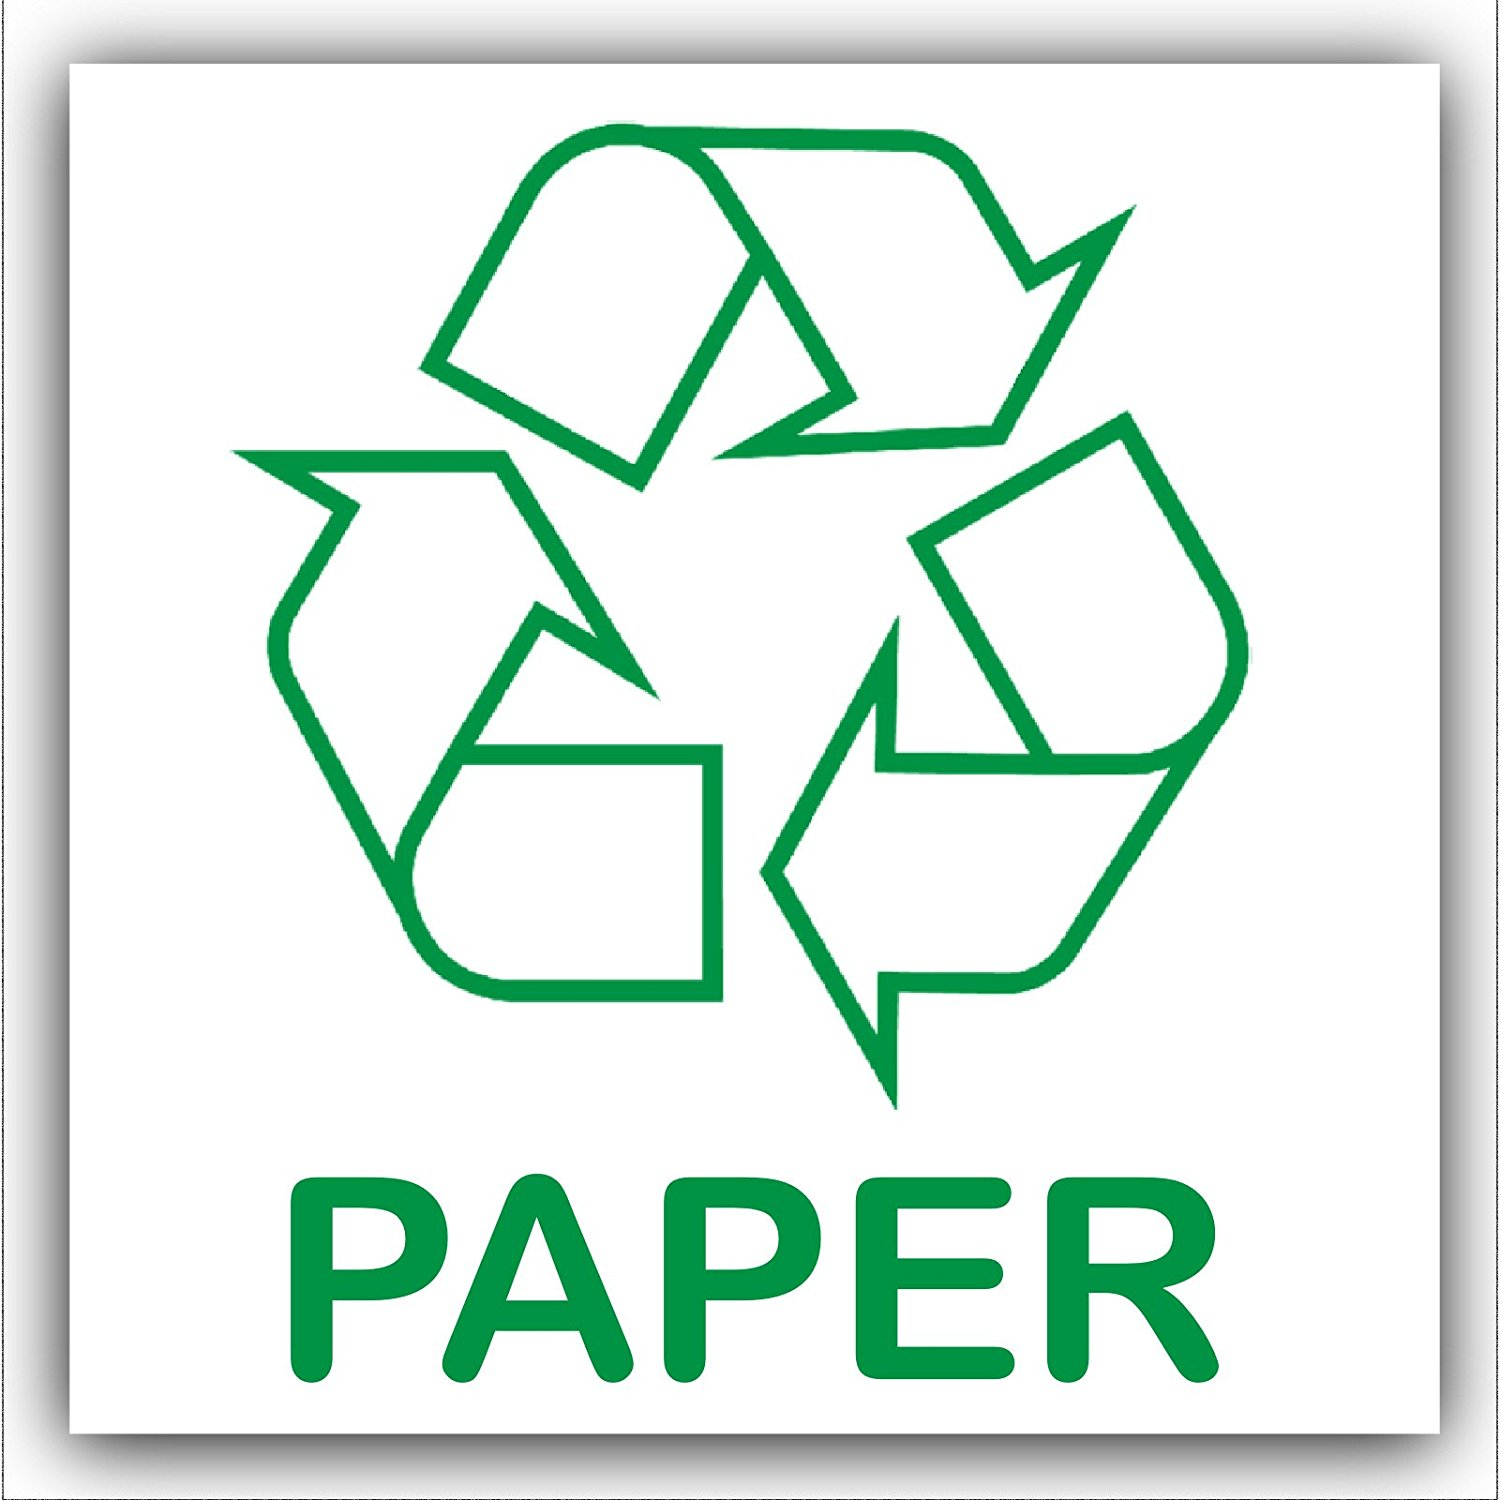 Paper Recycling Sign Recycle Paper - ClipAr...